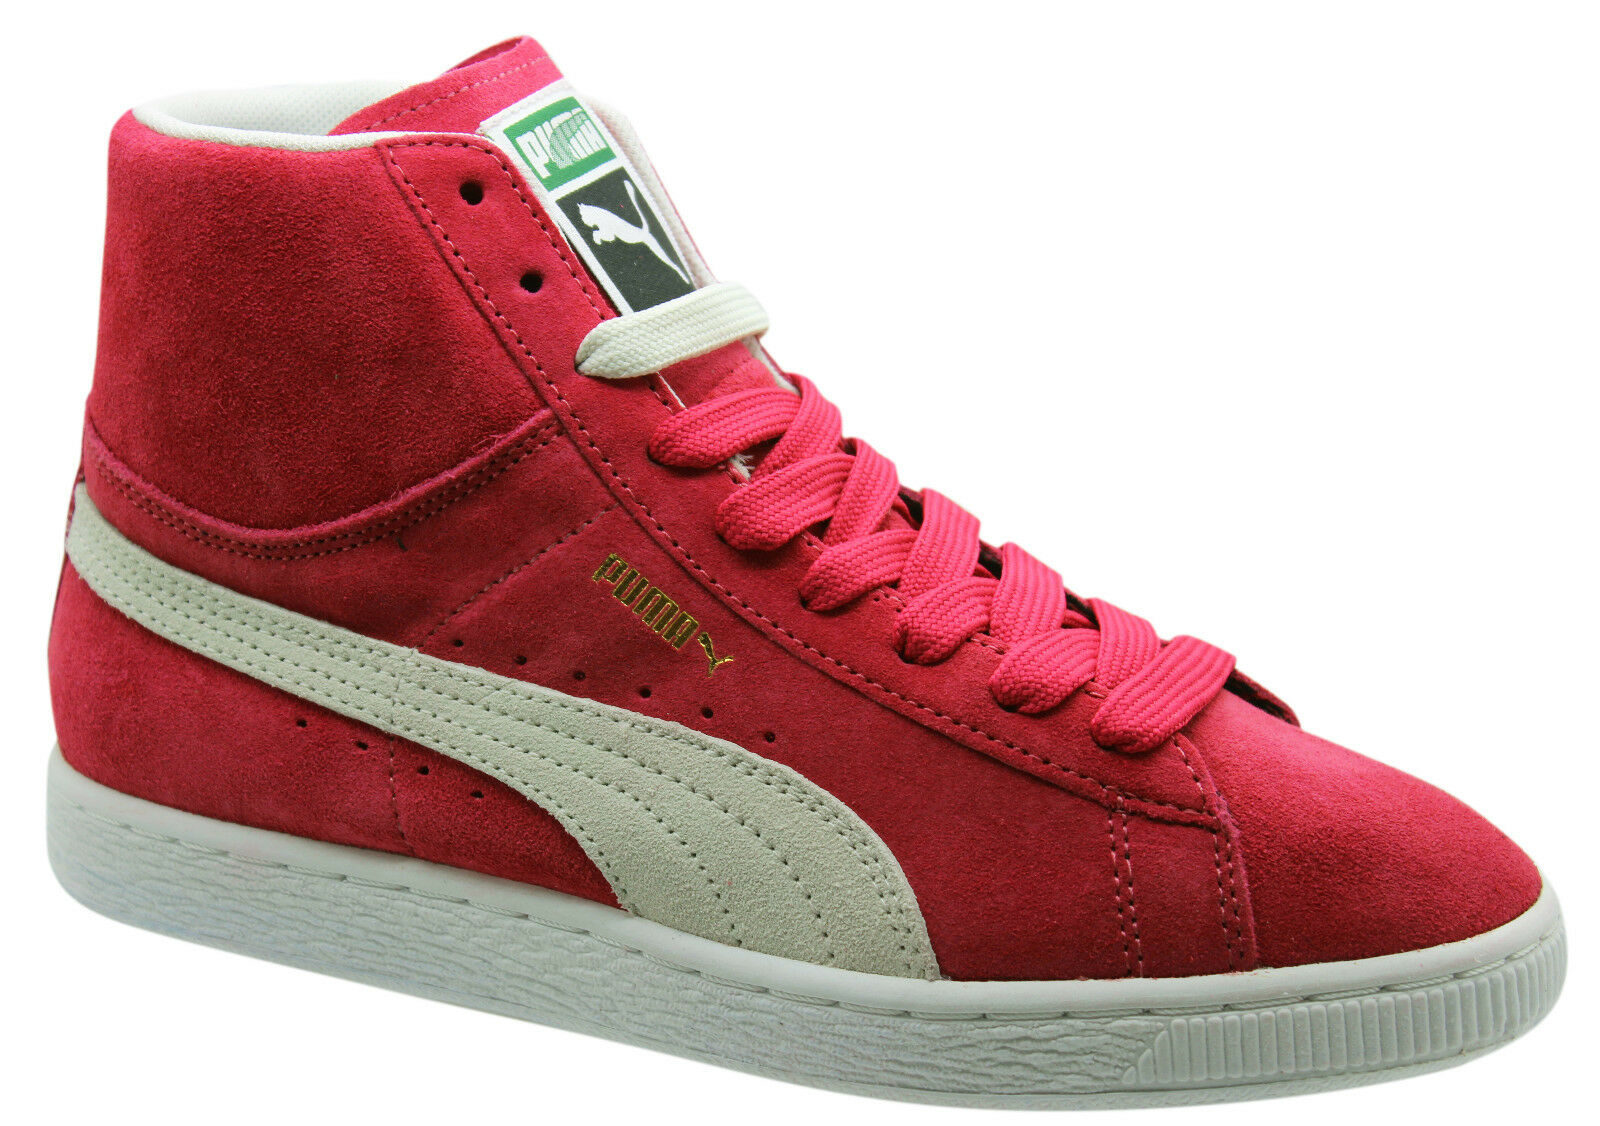 Puma Suede Mid Womens Trainers Hi Top Shoes Leather Pink Lace Up 355460 02 D51 Special limited time